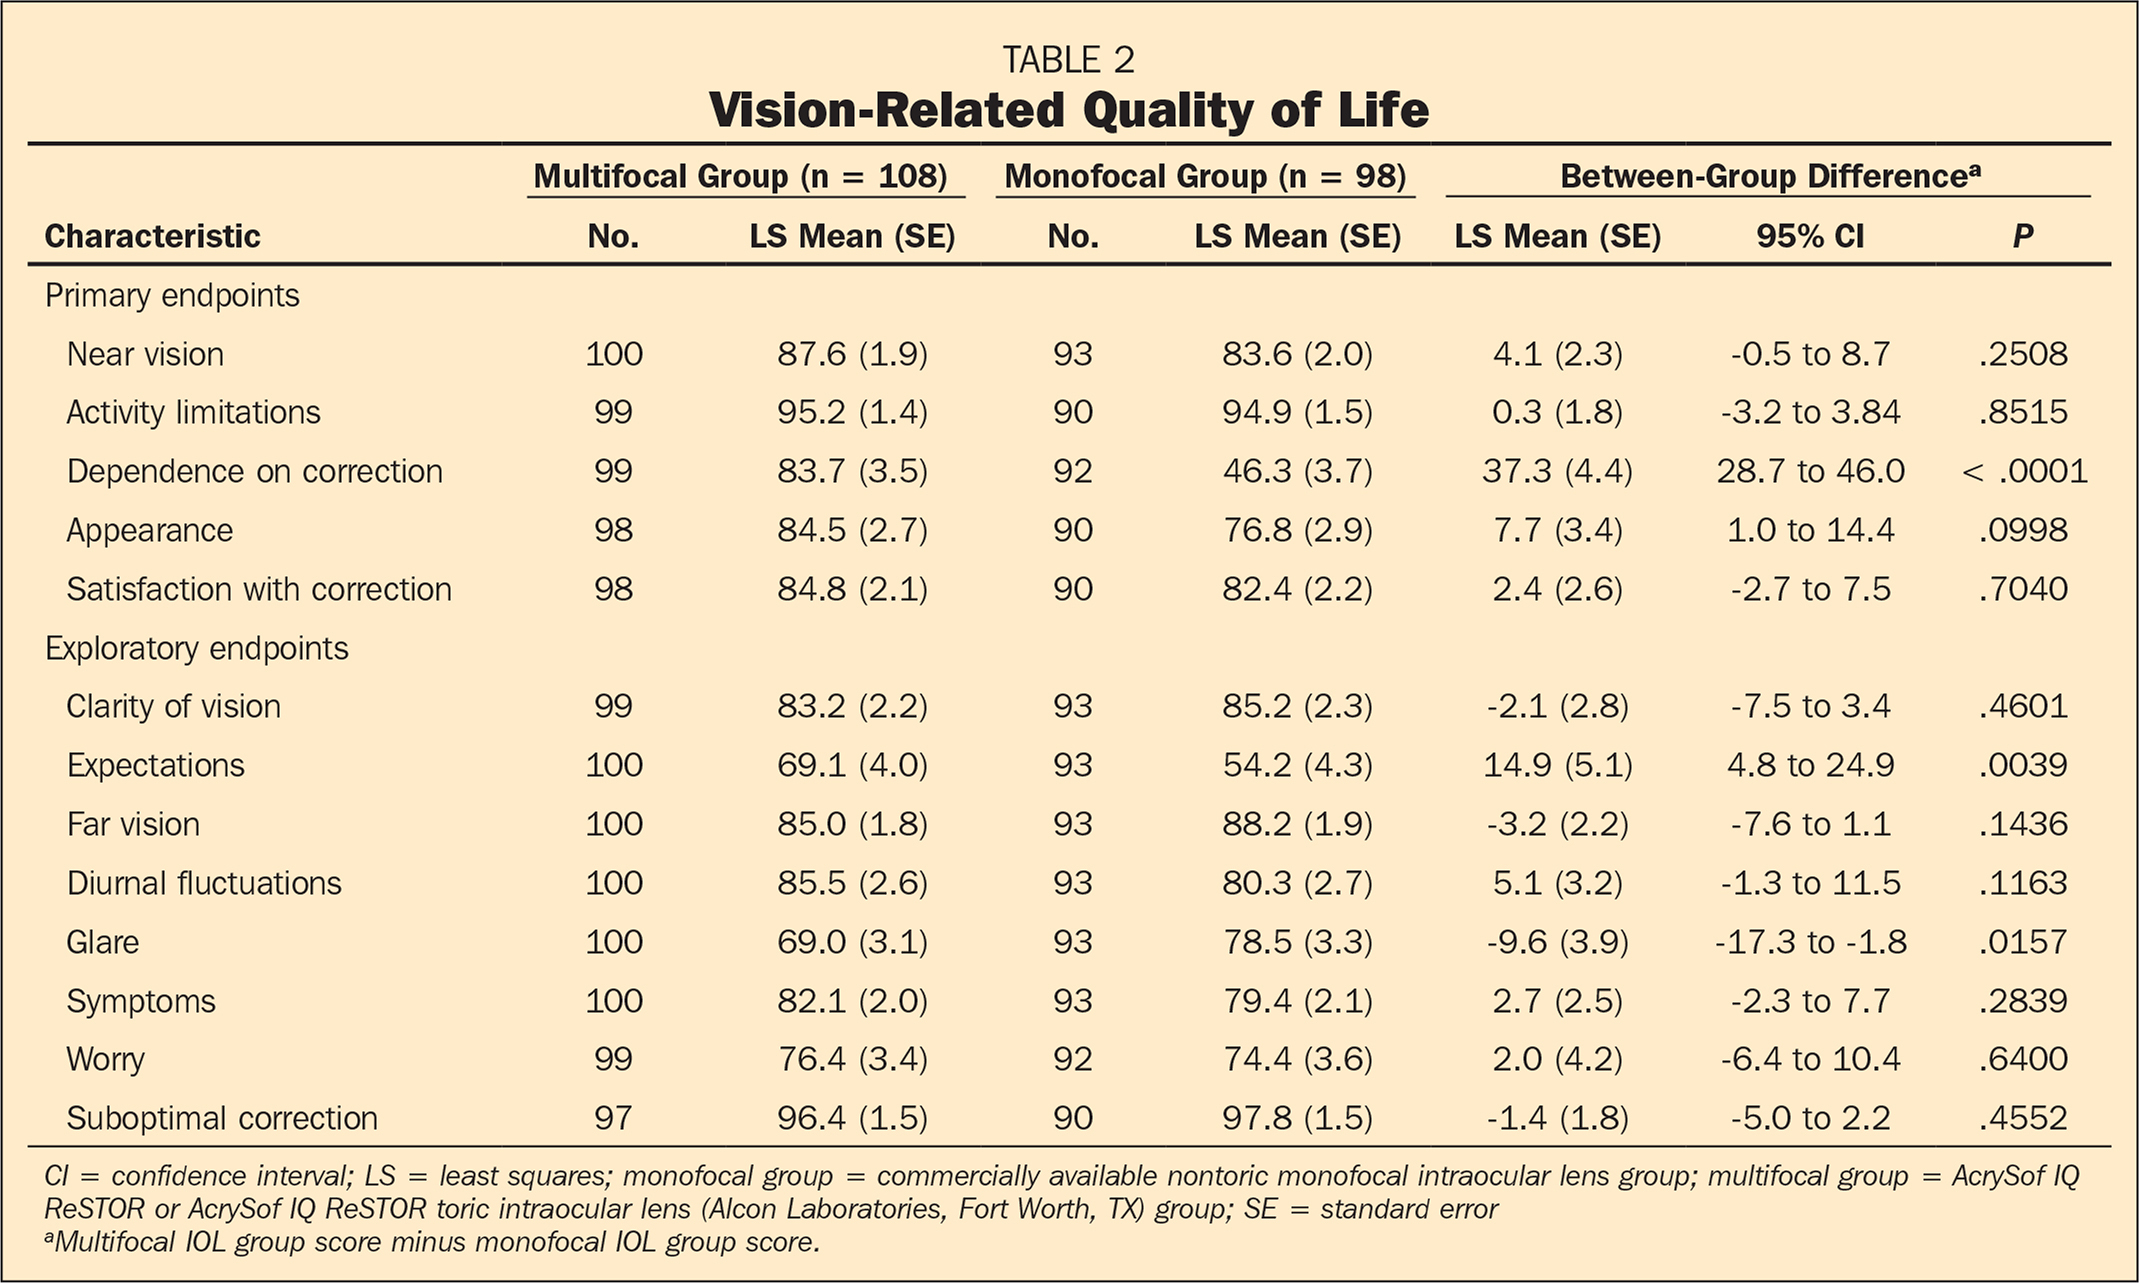 Vision-Related Quality of Life